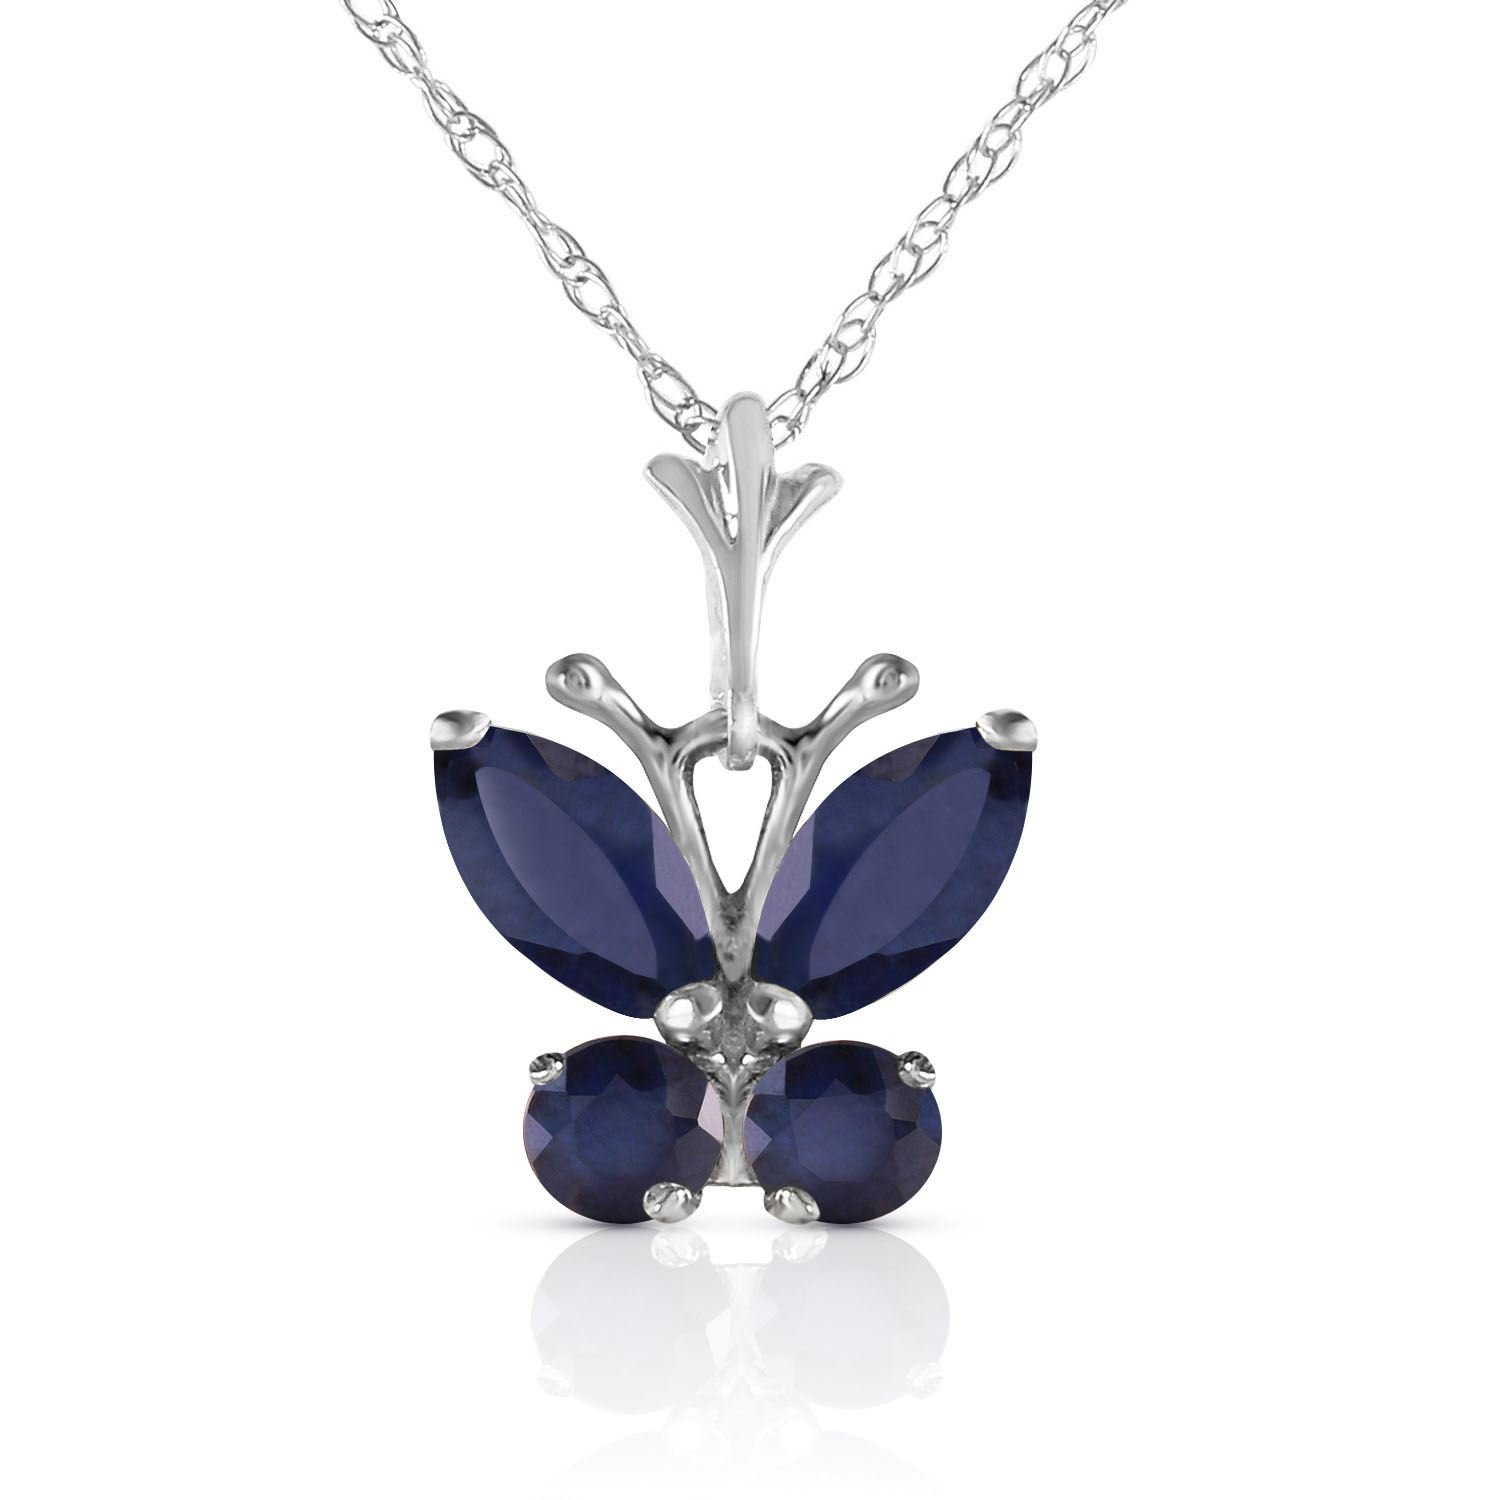 ALARRI 0.6 Carat 14K Solid White Gold Butterfly Necklace Natural Sapphire with 18 Inch Chain Length